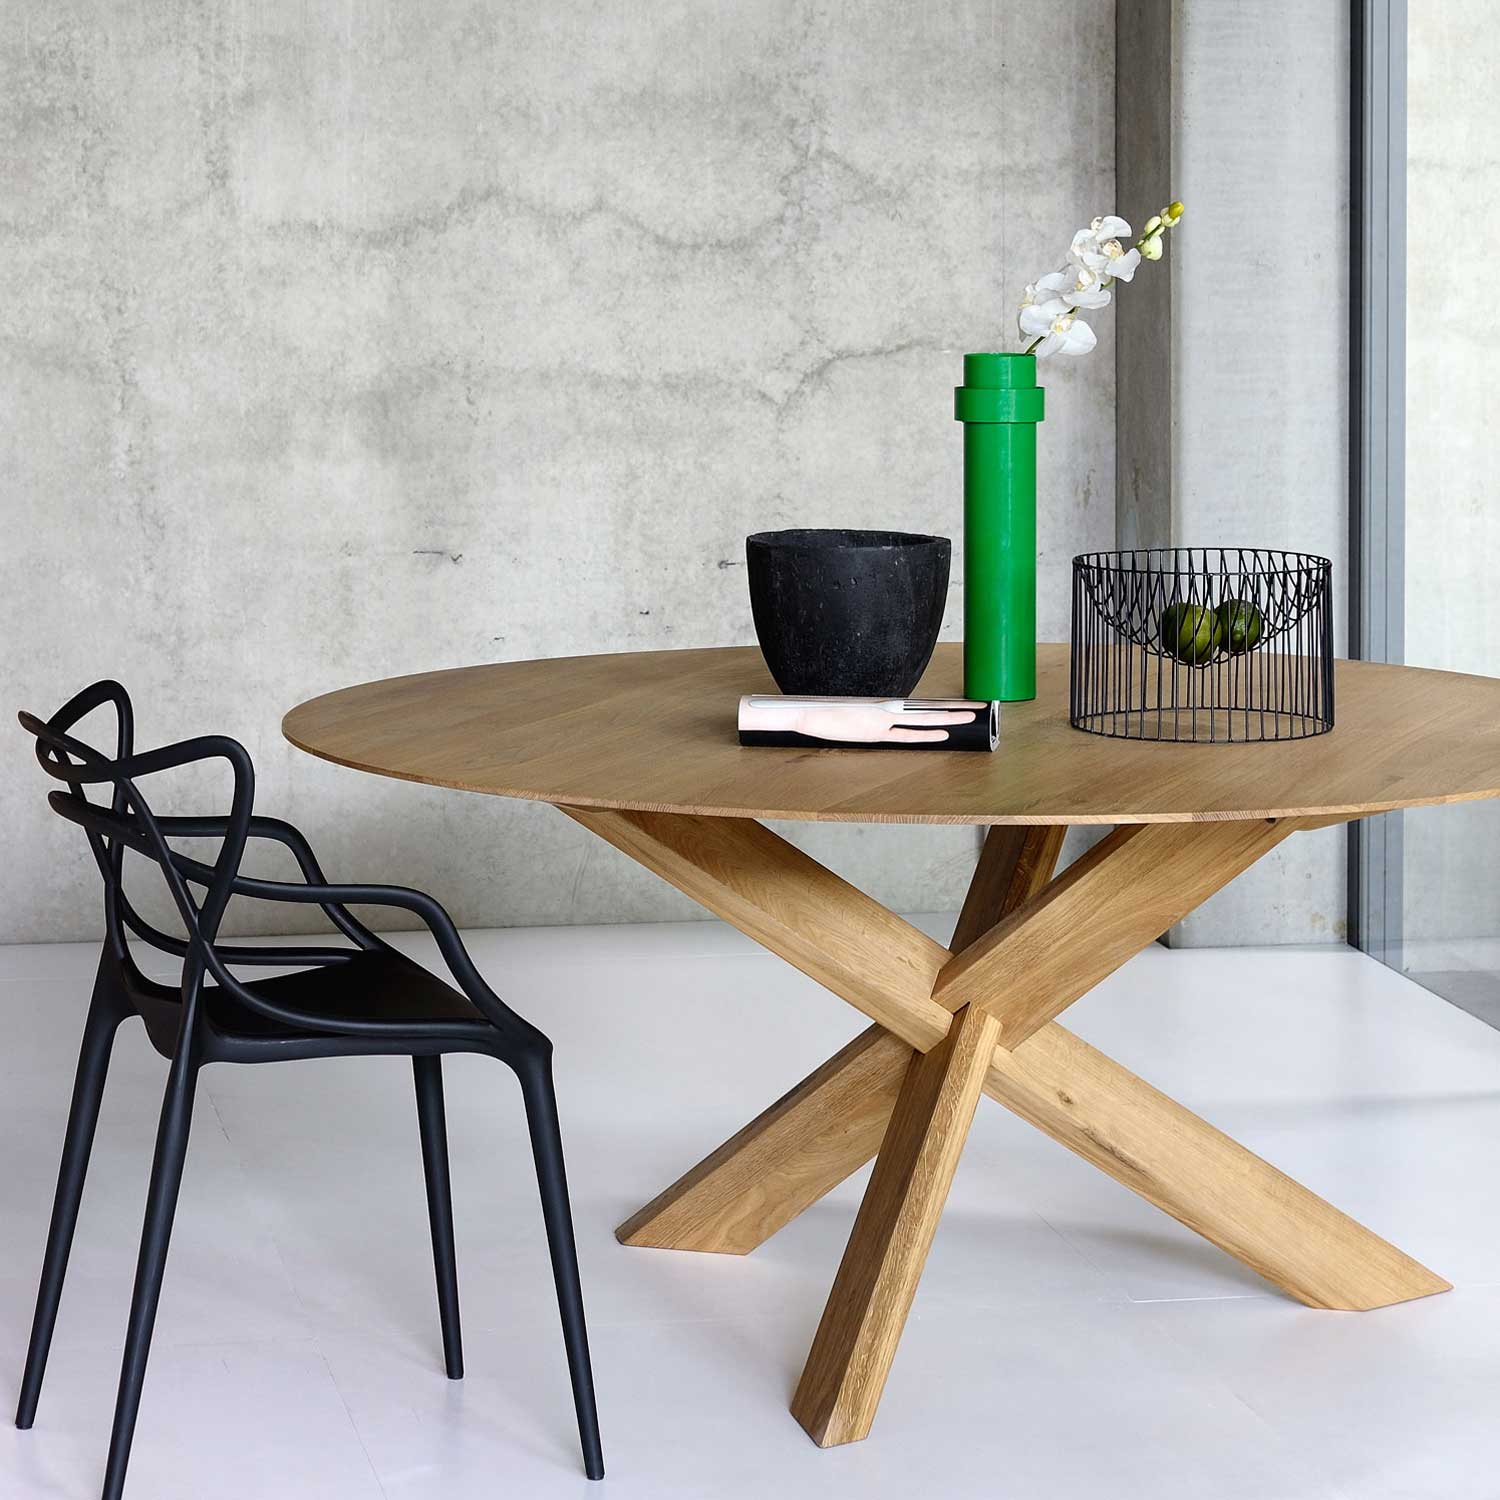 Ethnicraft Circle oak dining table - 136cm